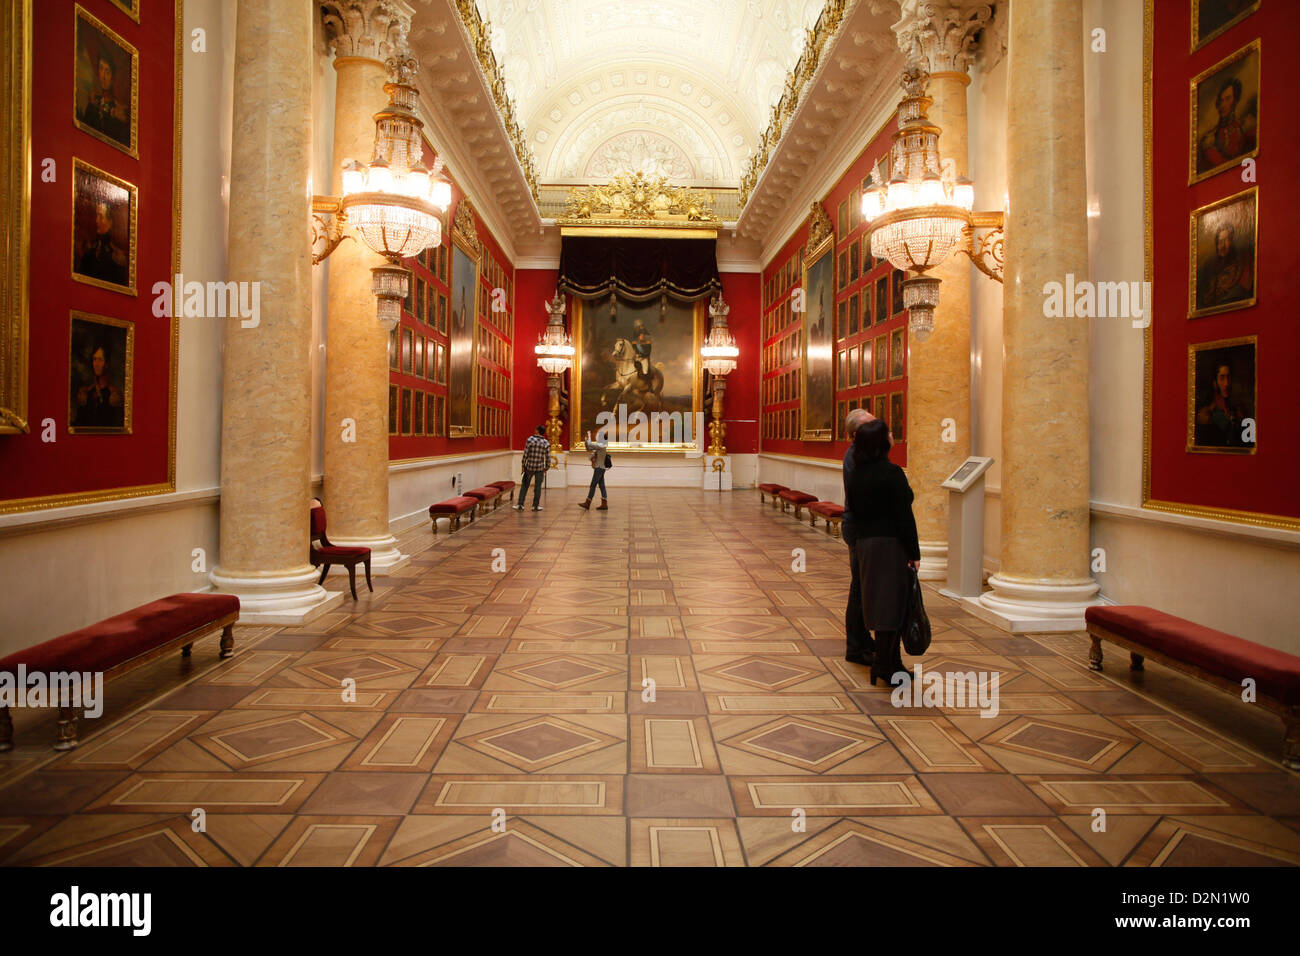 The Gallery of the Patriotic War of 1812, Hermitage Museum, St. Petersburg, Russia, Europe - Stock Image